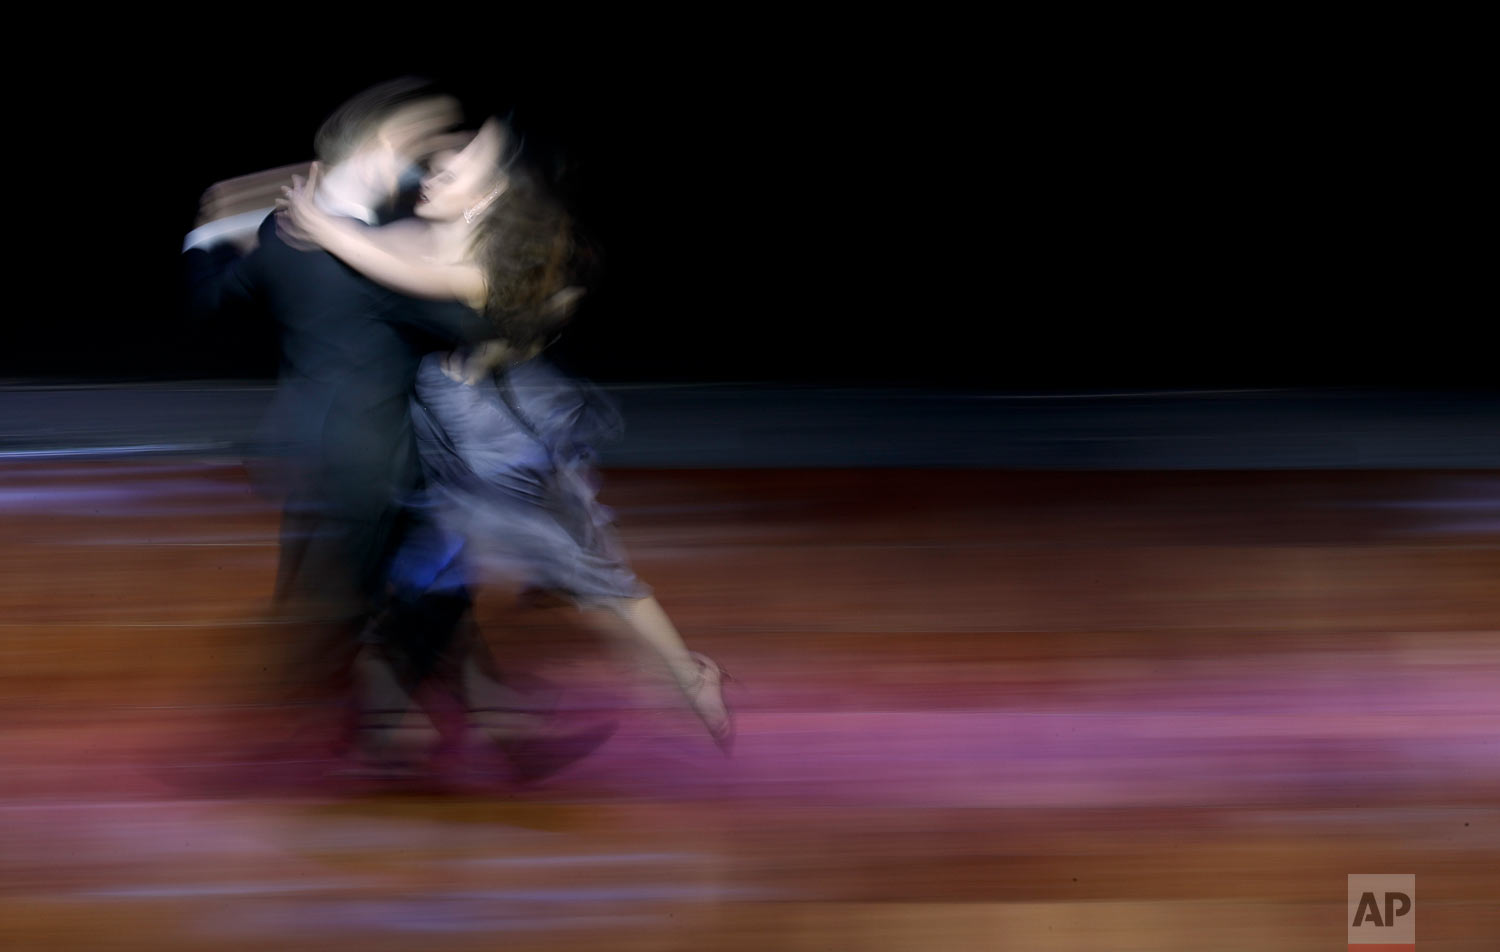 Argentine couple Maksim Gerasimov and Agustina Piaggio compete in the stage category at the World Tango Championship final in Buenos Aires, Argentina, Aug. 22, 2018. (AP Photo/Natacha Pisarenko)